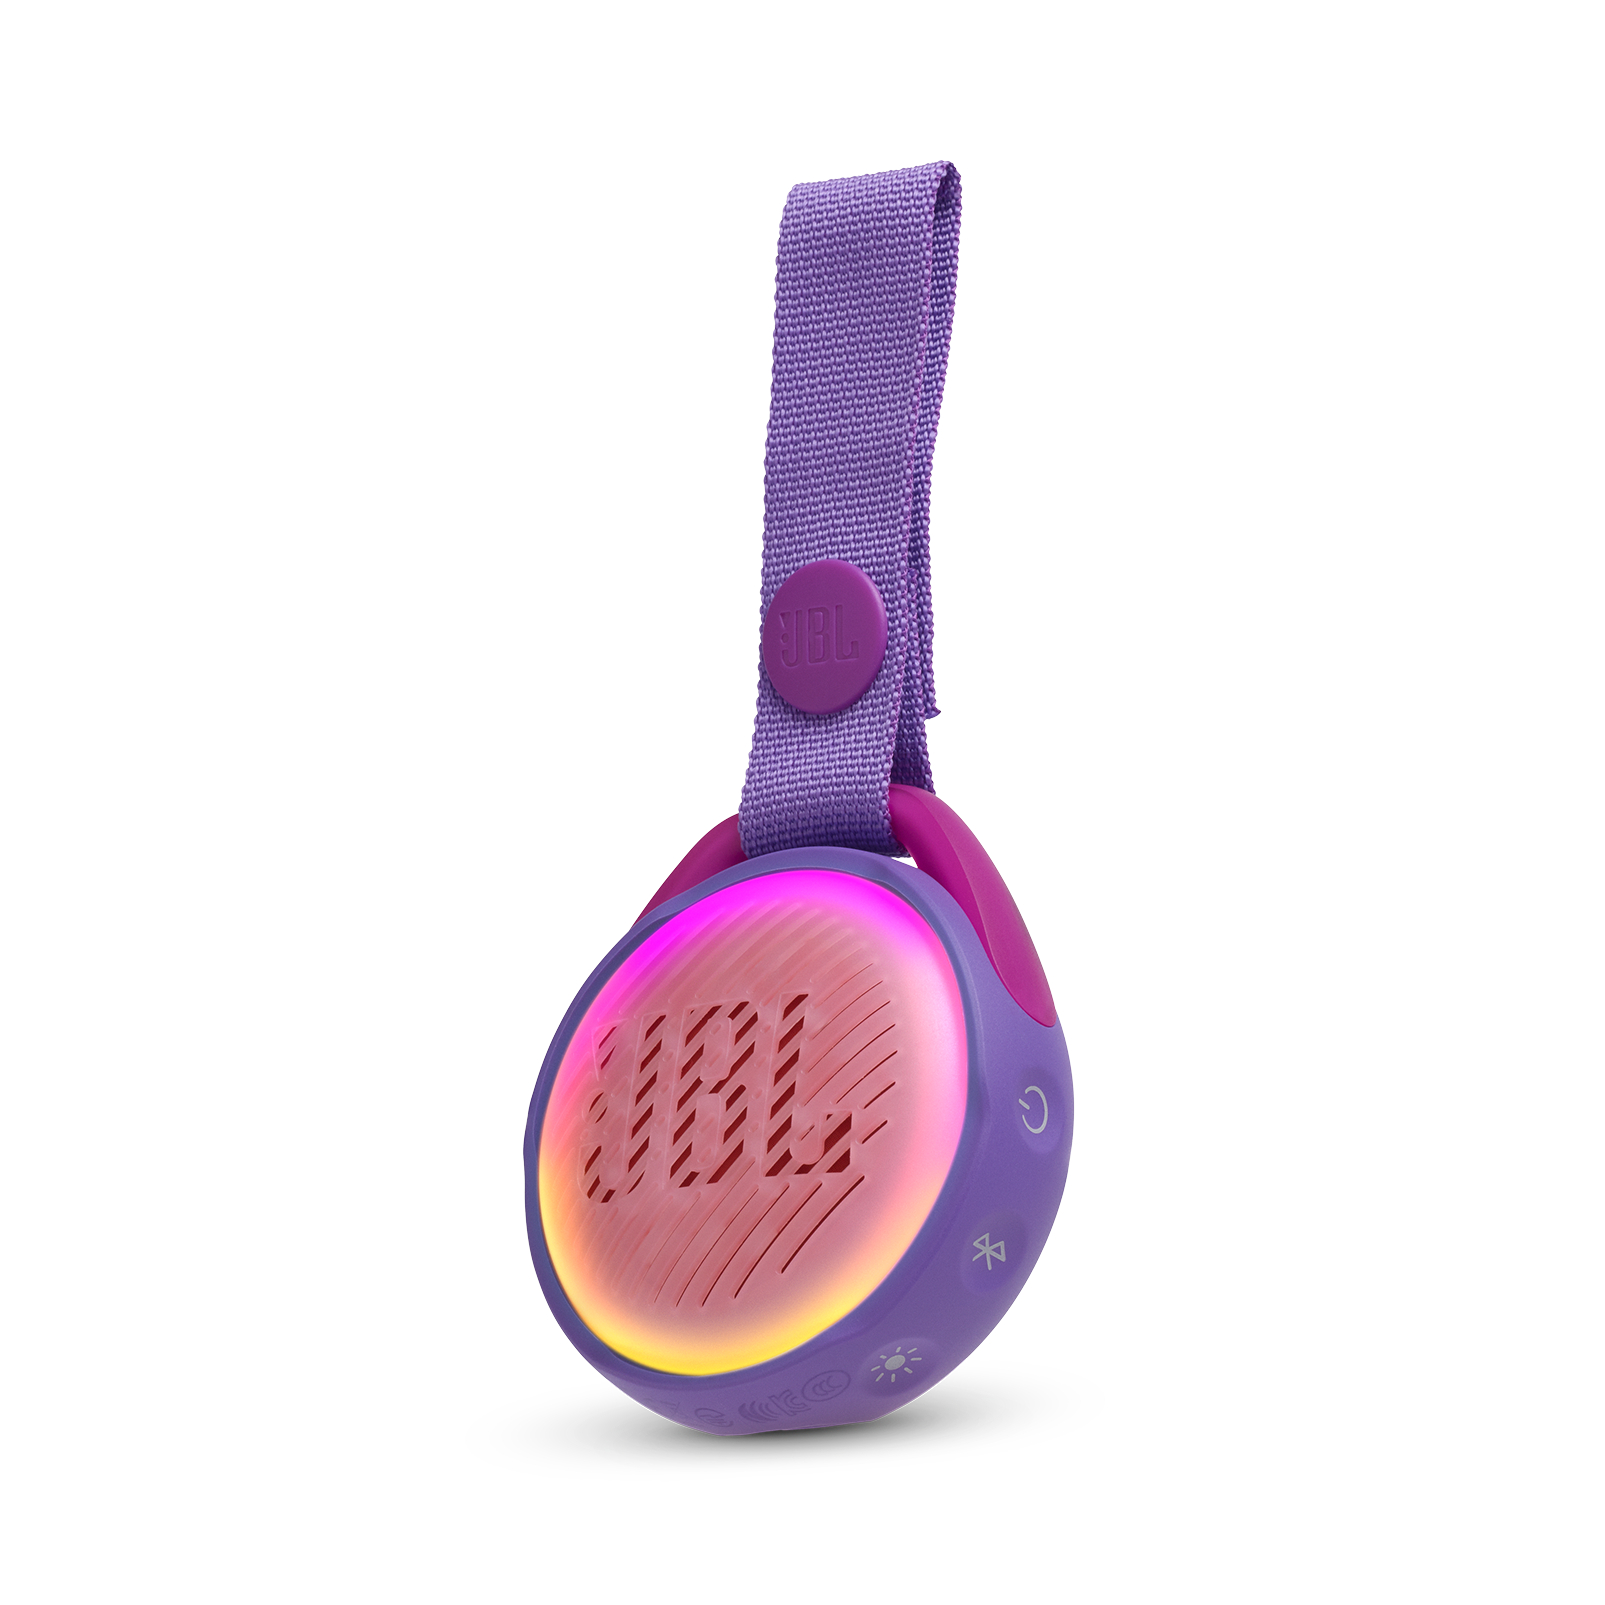 JBL JR POP - Iris Purple - Portable speaker for kids - Hero